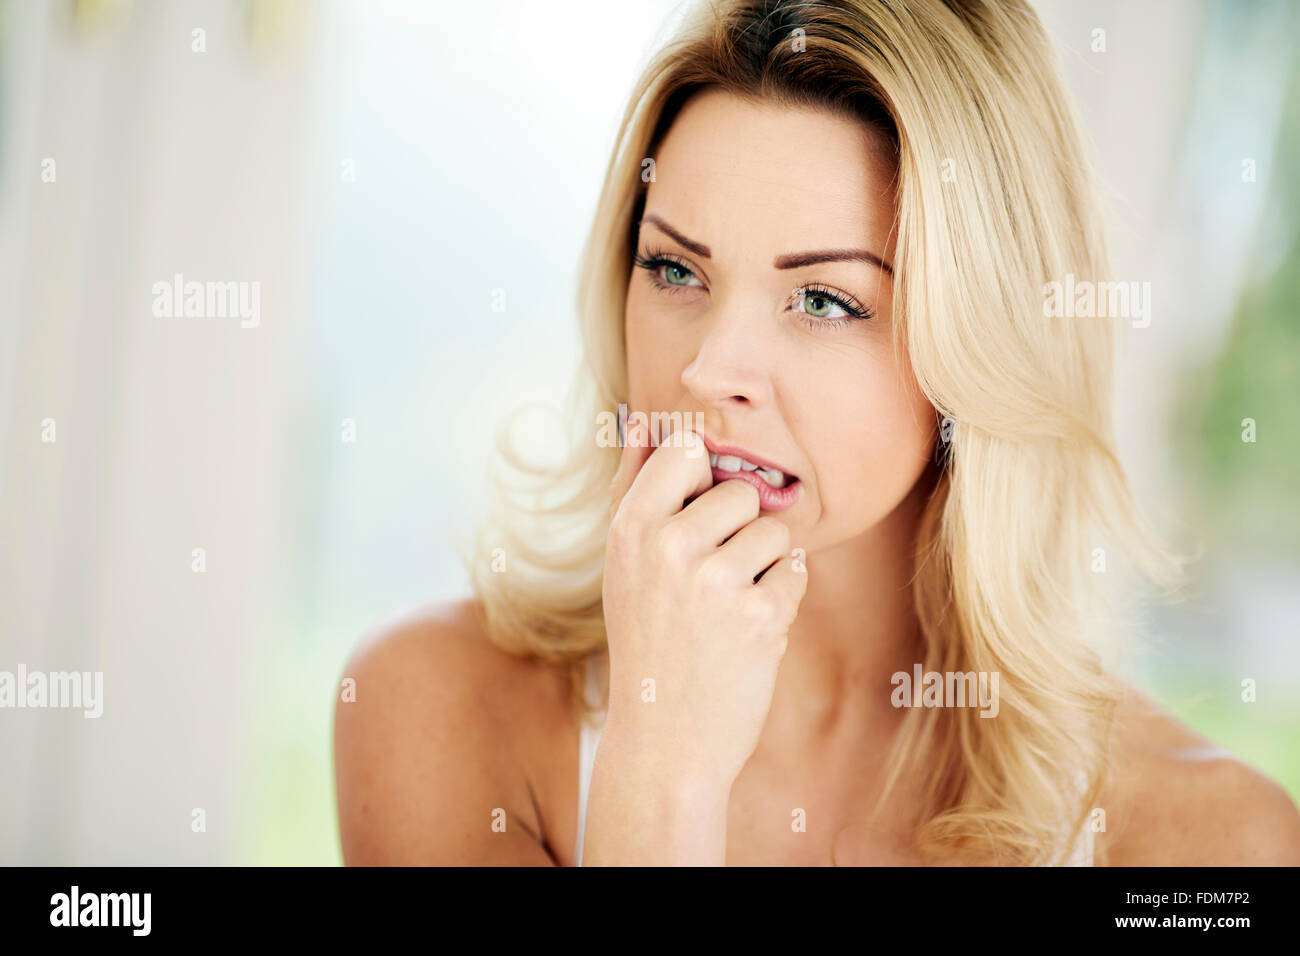 Woman looking anxious - Stock Image